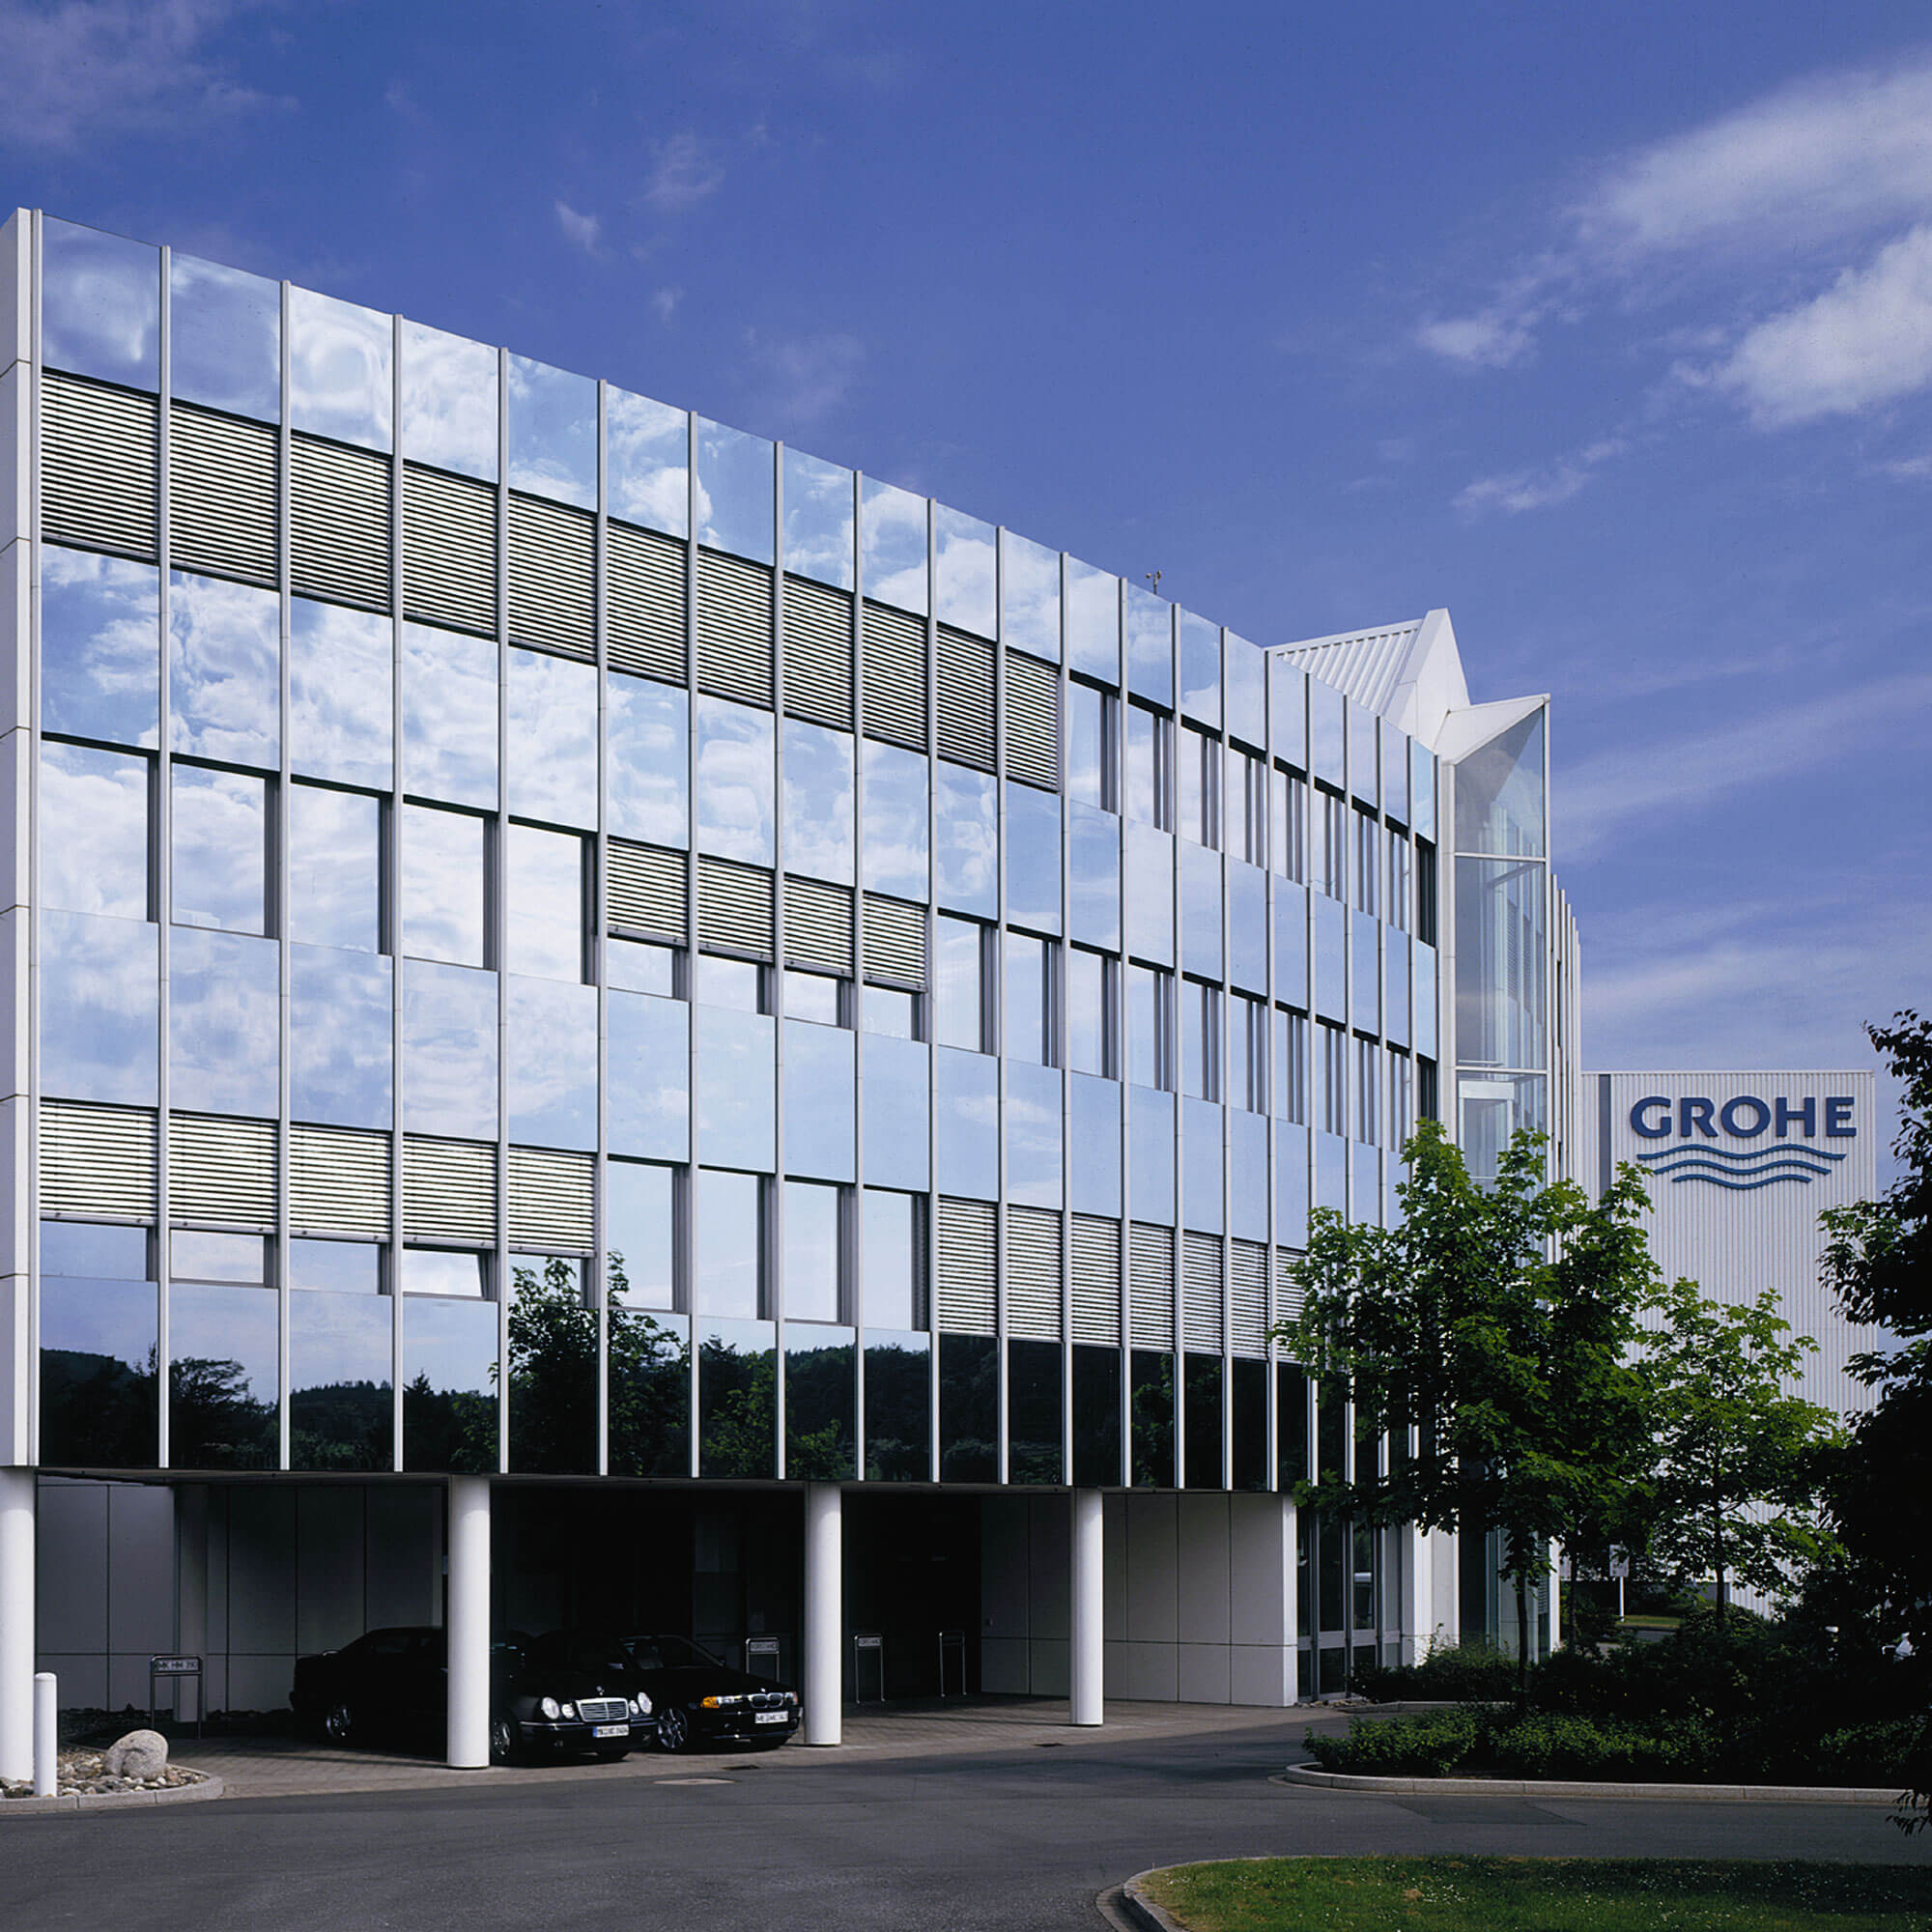 Exterior of Grohe building